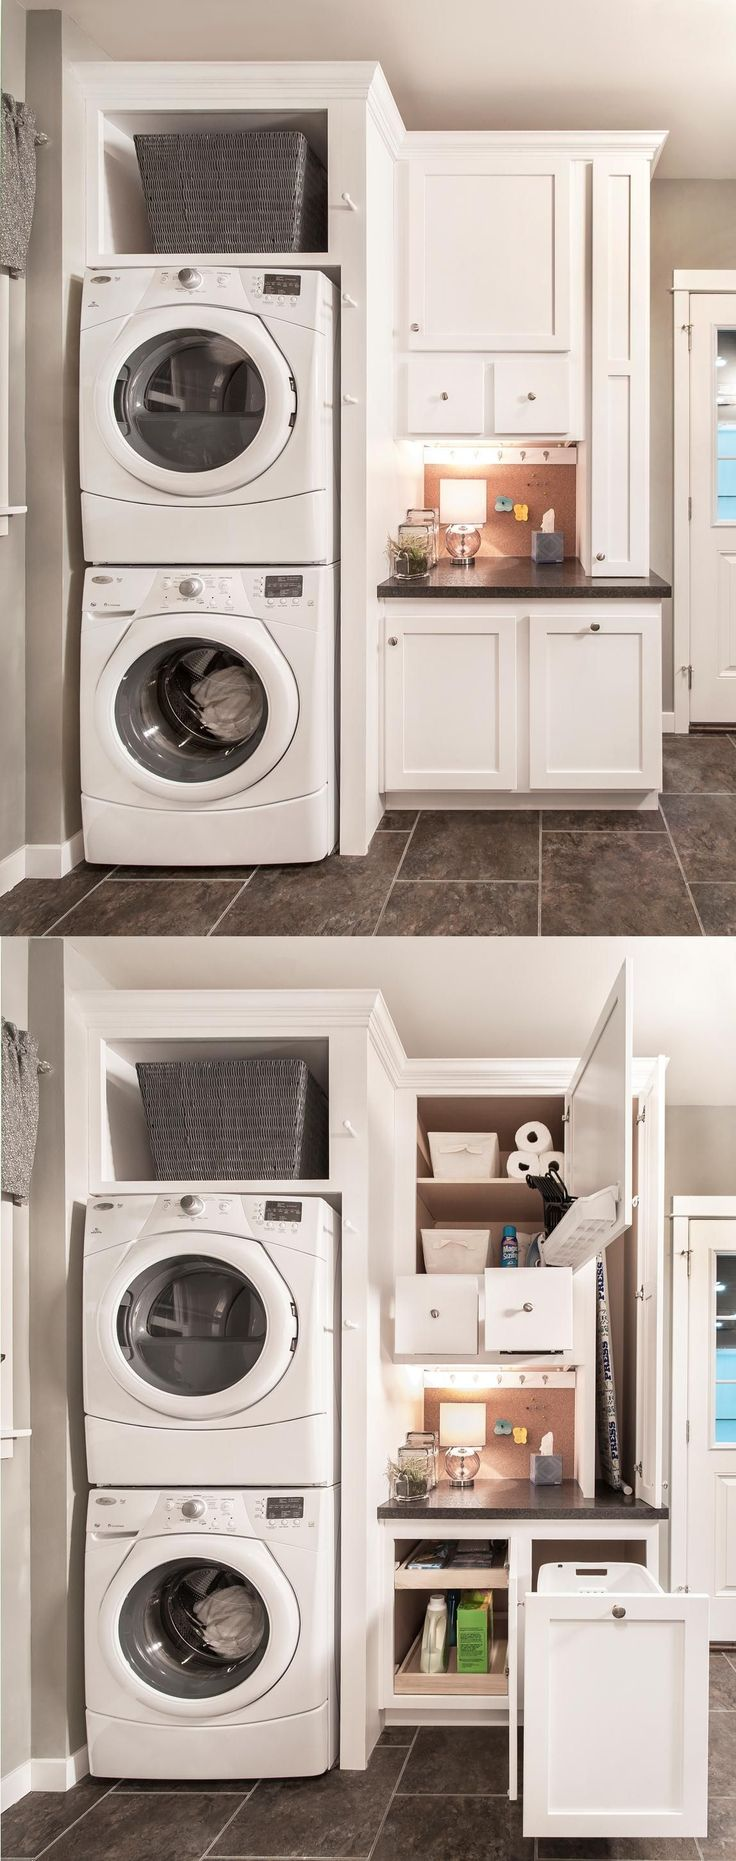 The 25 Best Stacked Washer Dryer Ideas On Pinterest